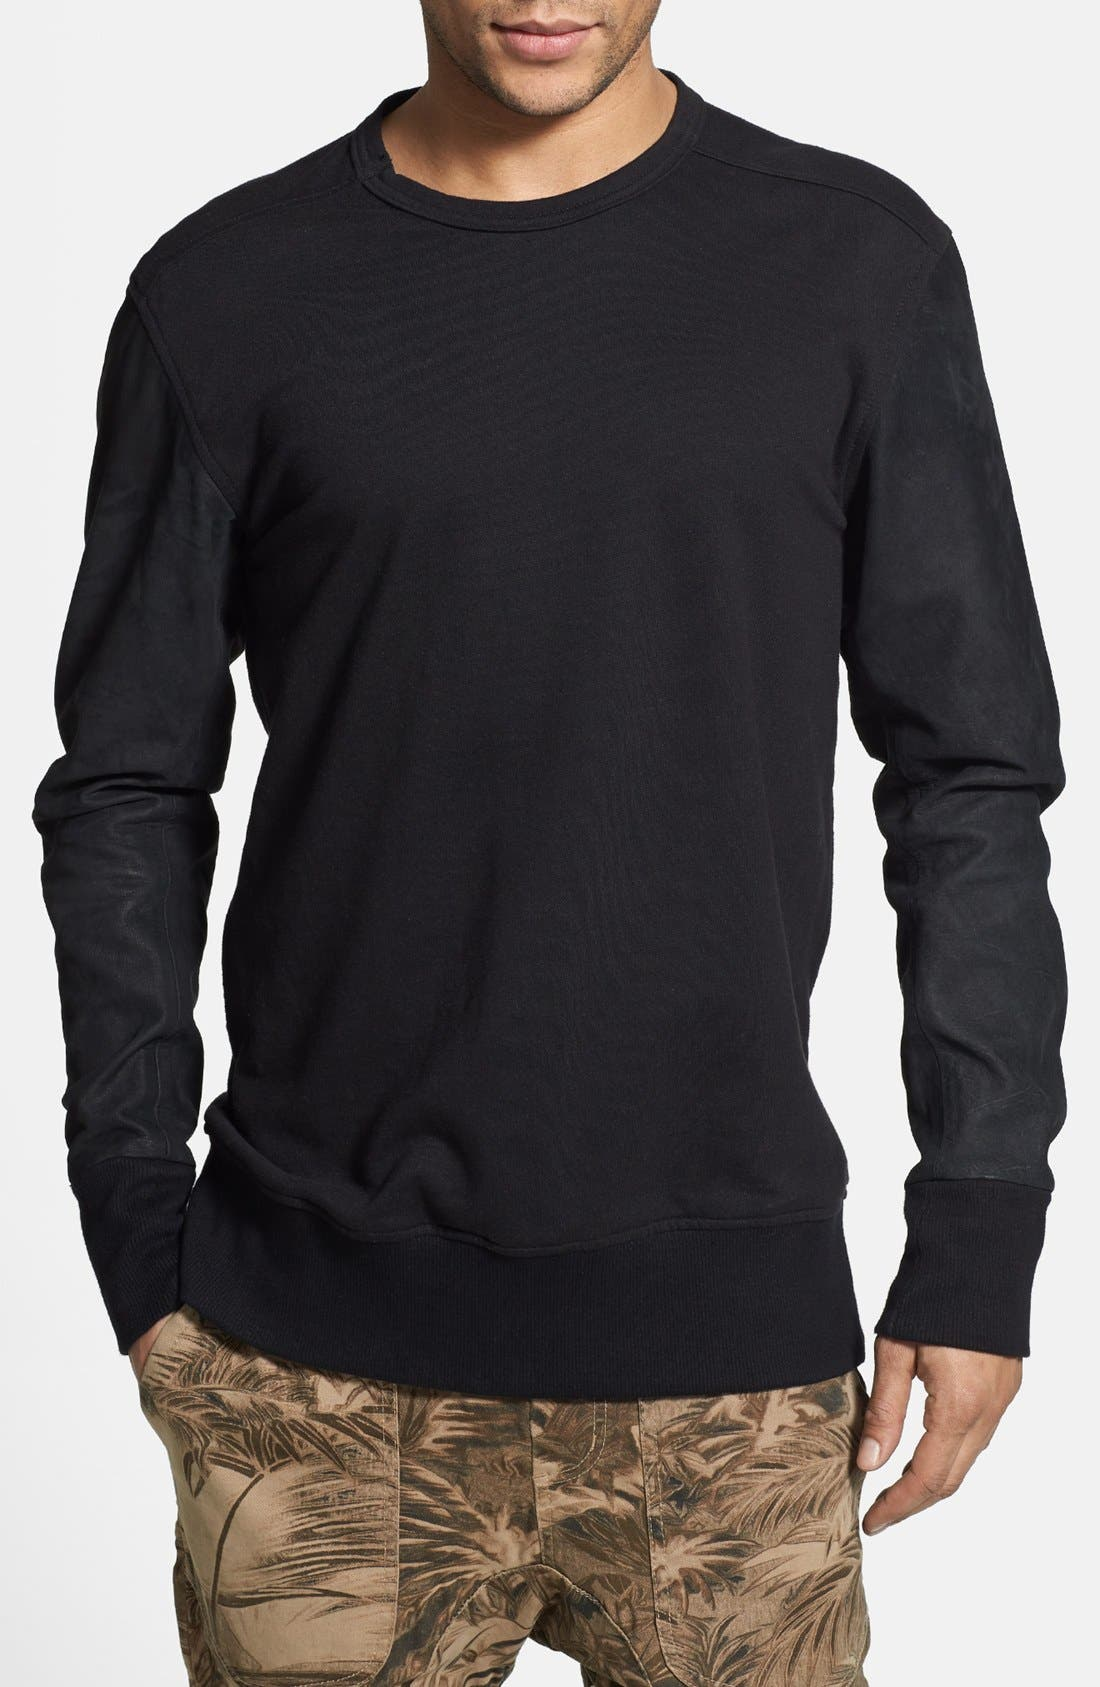 Main Image - ZANEROBE 'Primal' Crewneck Sweatshirt with Suede Sleeves